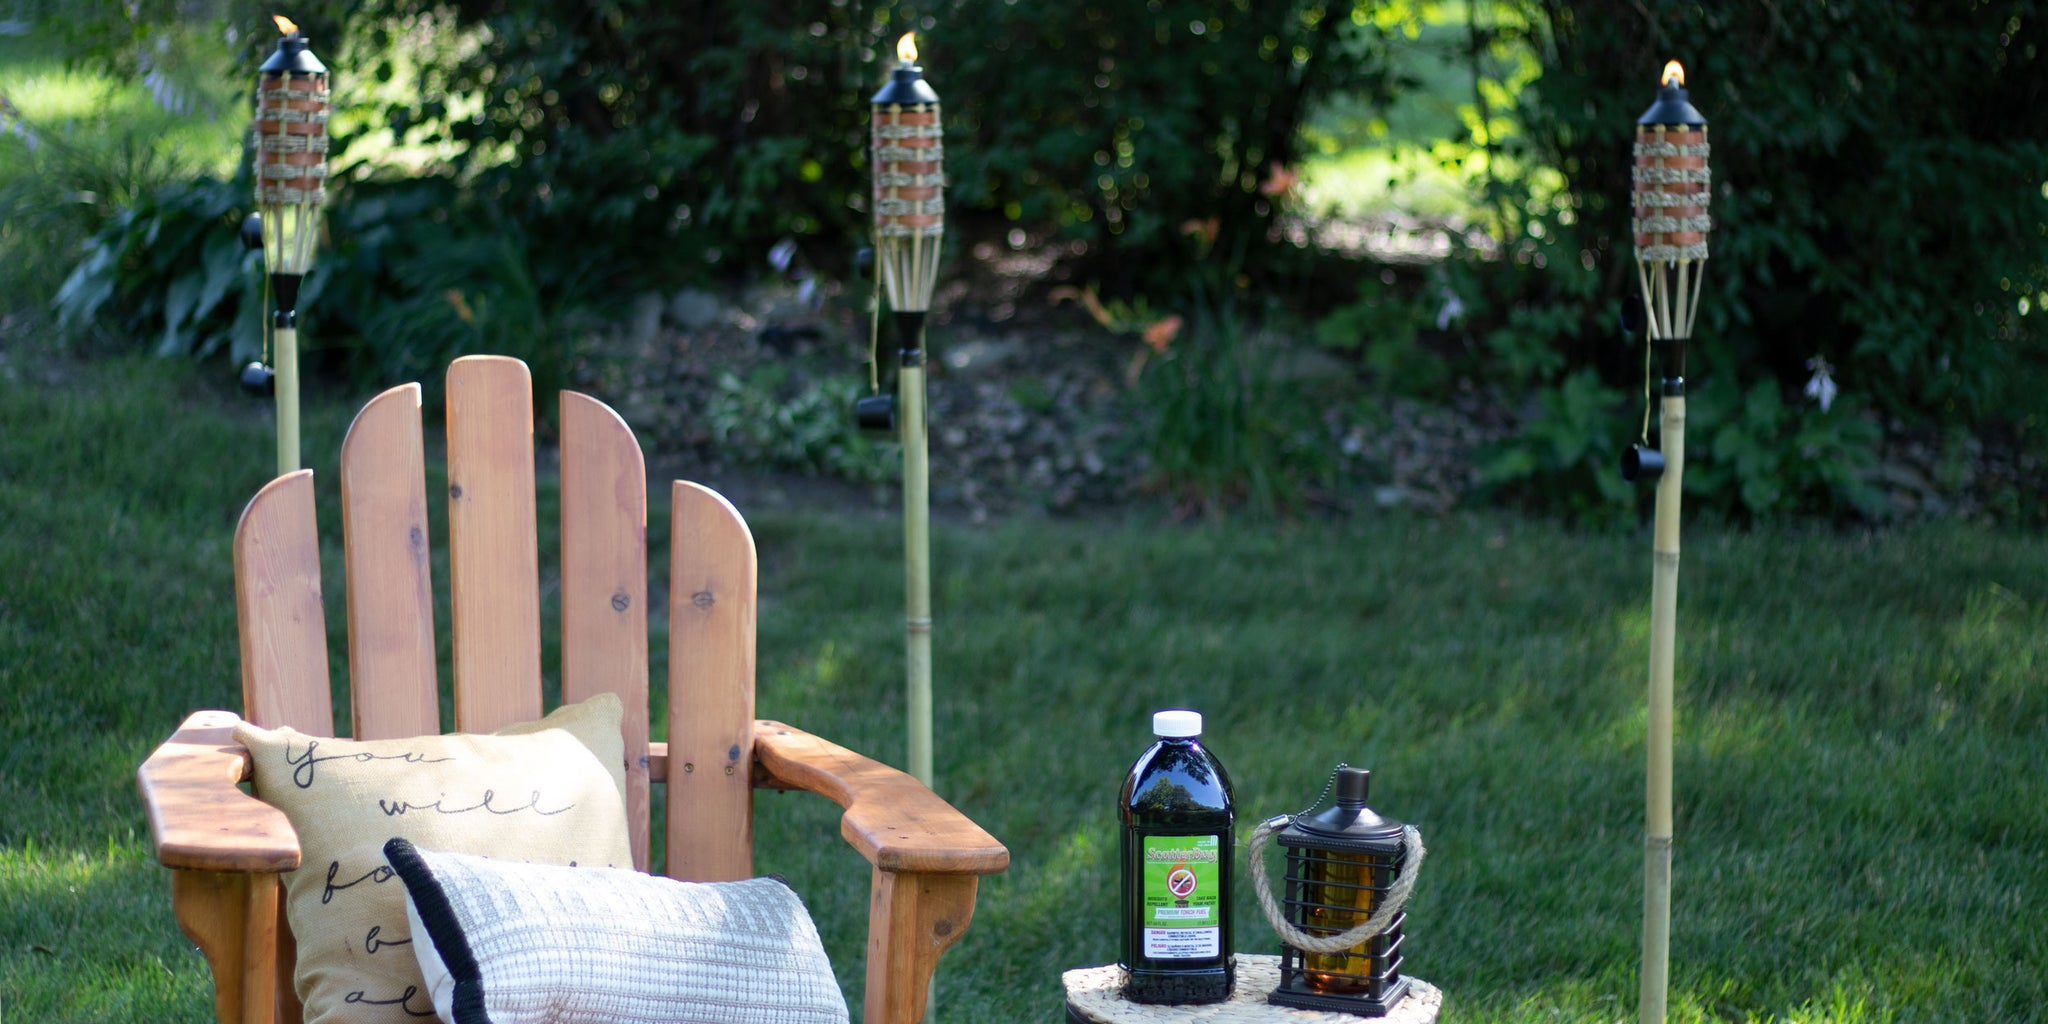 How Well Does Scatterbug Torch Fuel Keep Mosquitoes Away? | Patio Essentials